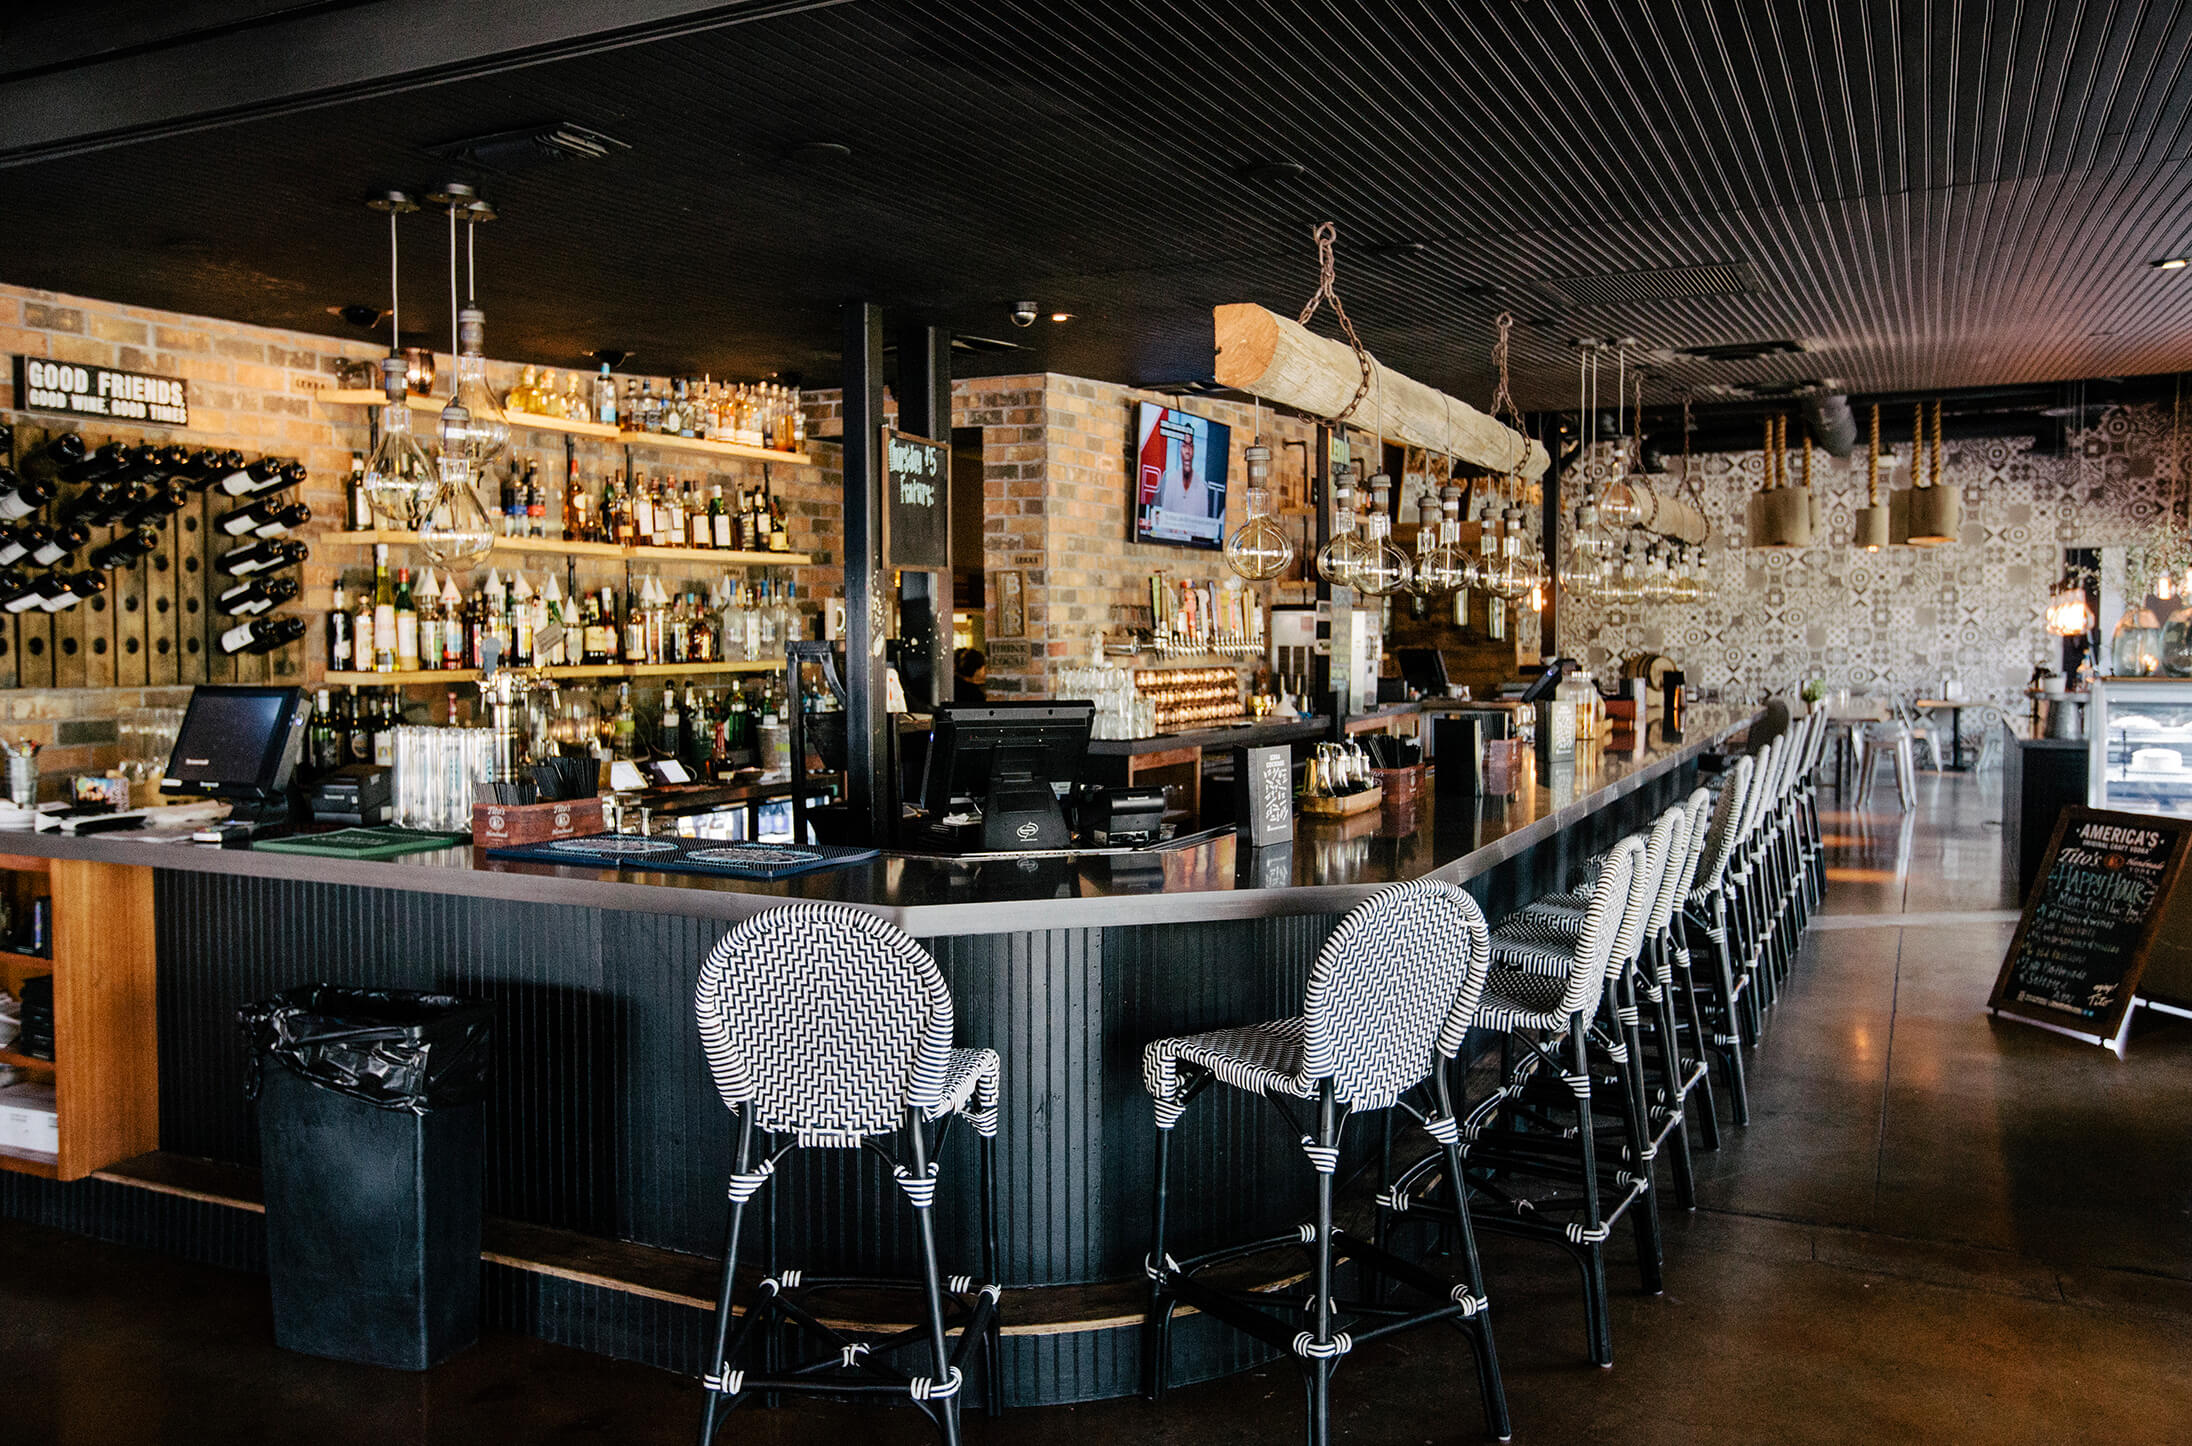 Houndstooth full bar and barstools